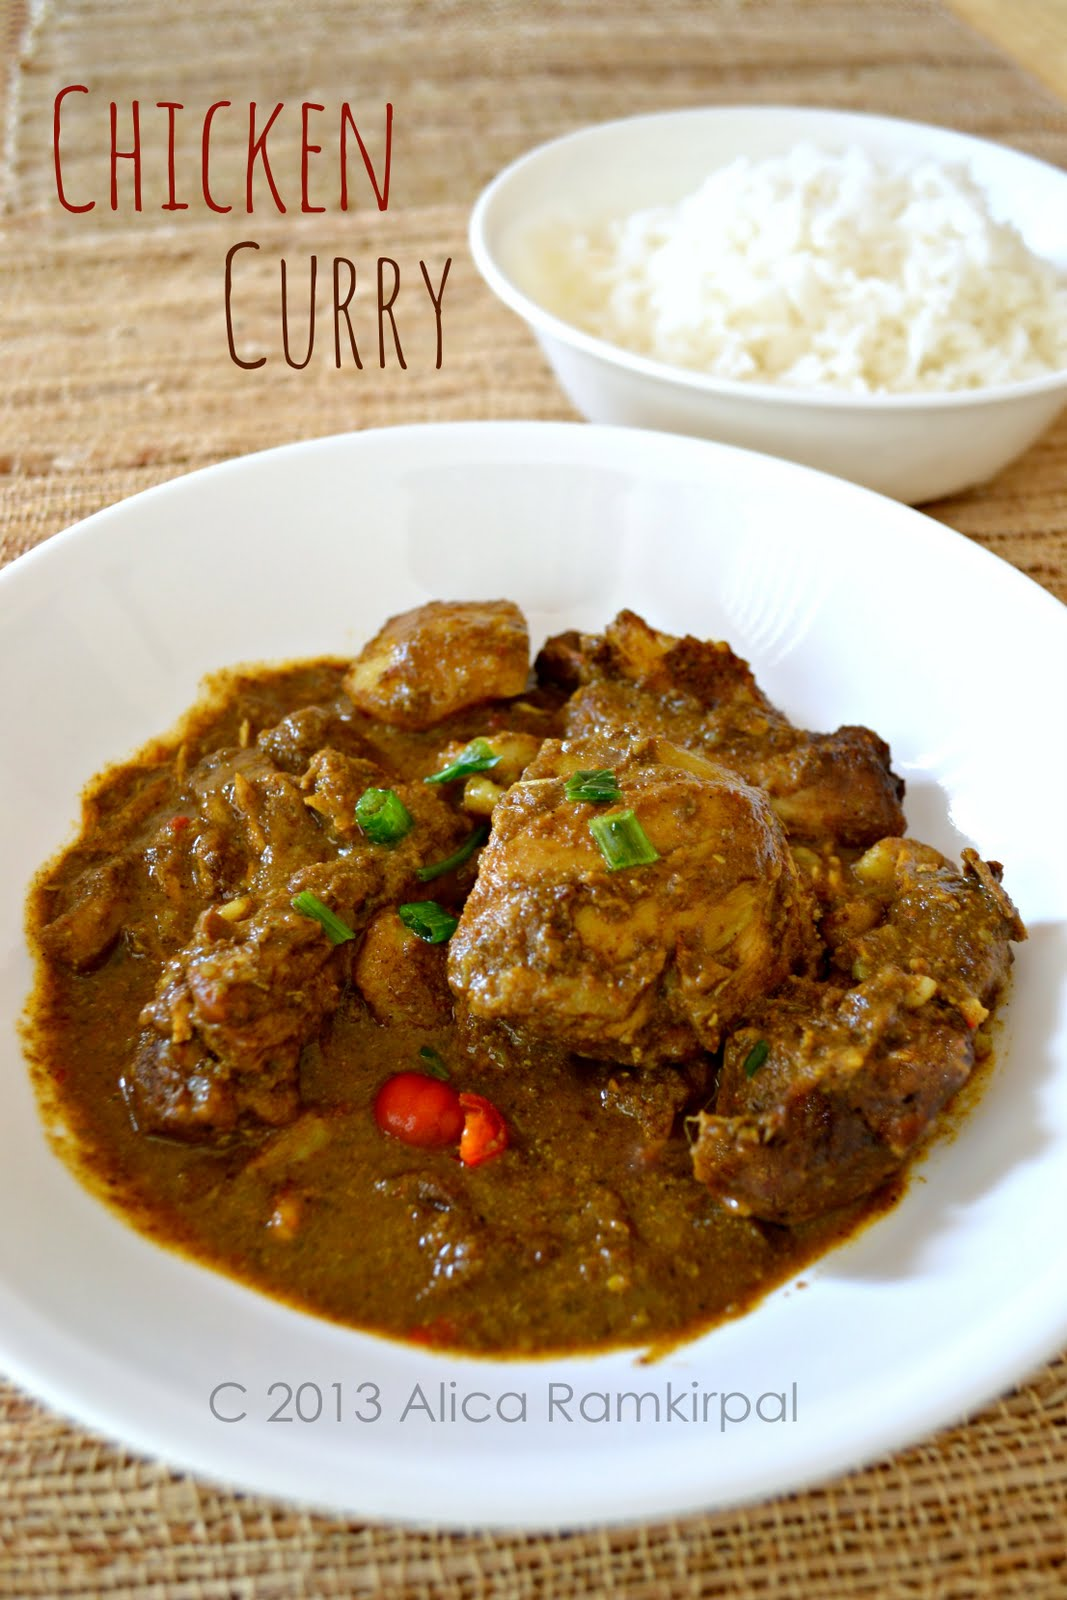 057a915b8152 Chicken curry in particular is such a staple in a (meat-eating) Guyanese  home that you would think it ...